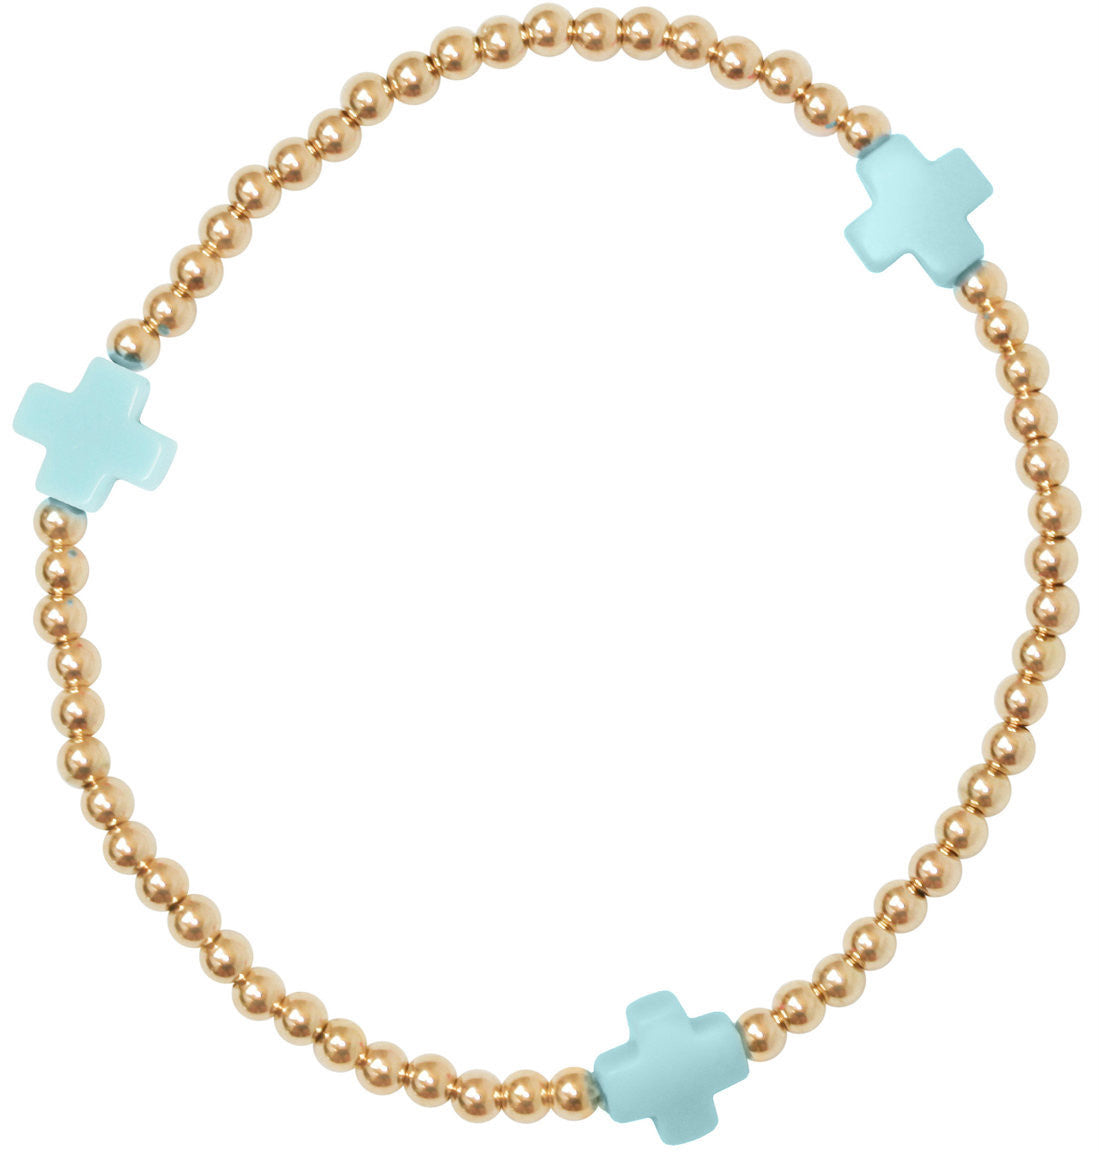 ENEWTON DESIGN - SIGNATURE CROSS BRACELET - GOLD